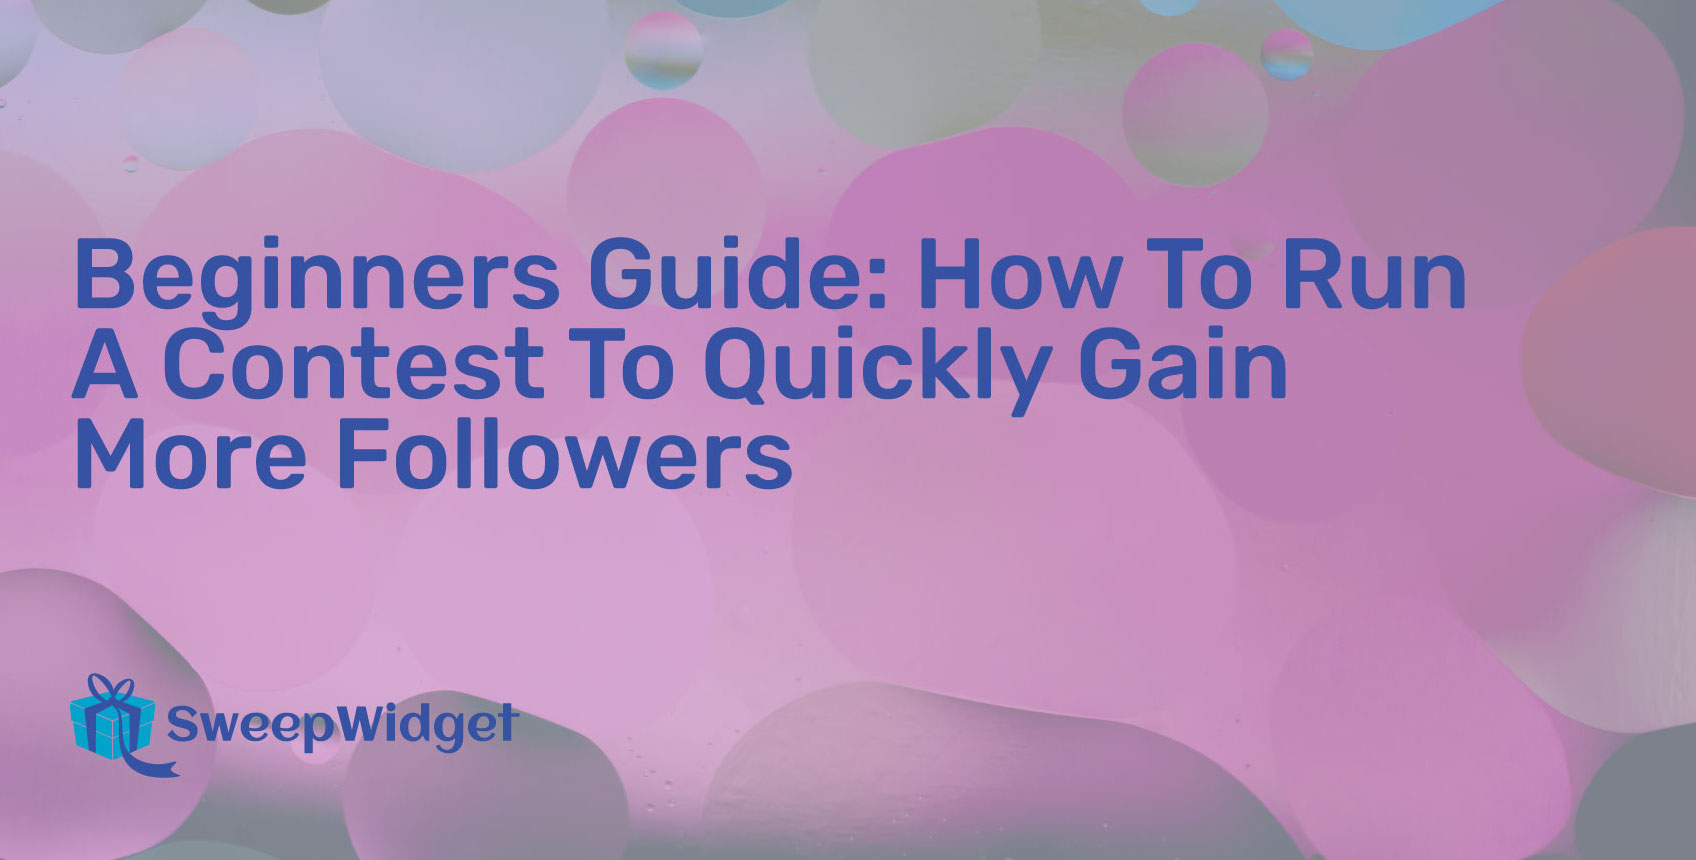 Beginners Guide: How To Run A Contest To Quickly Gain More Followers